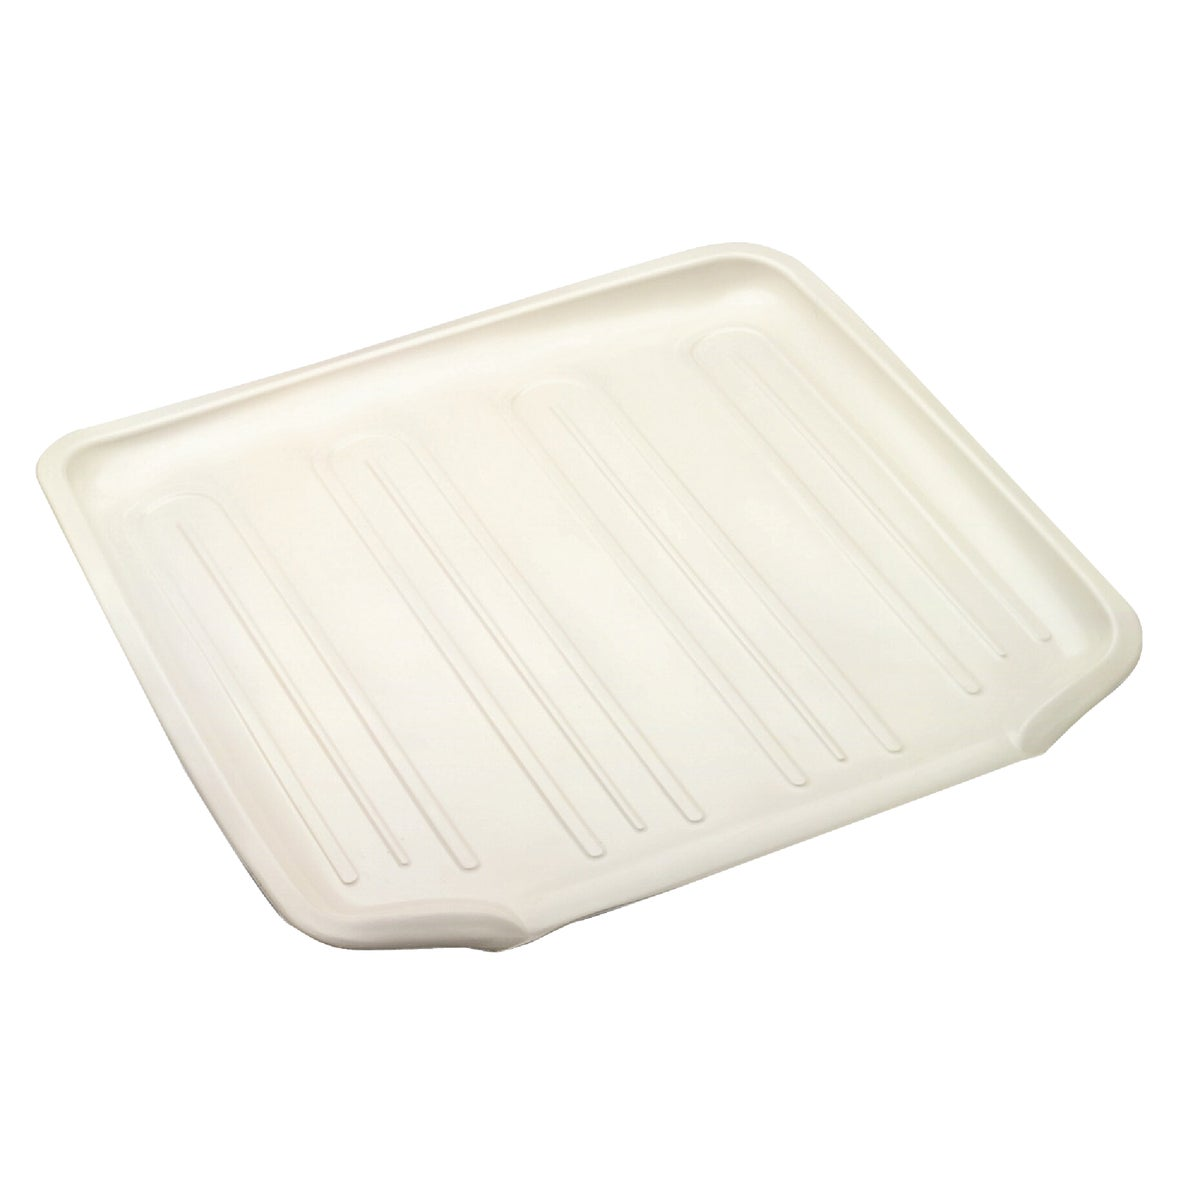 BISQUE DRAINER TRAY - 1180MABISQU by Rubbermaid Home